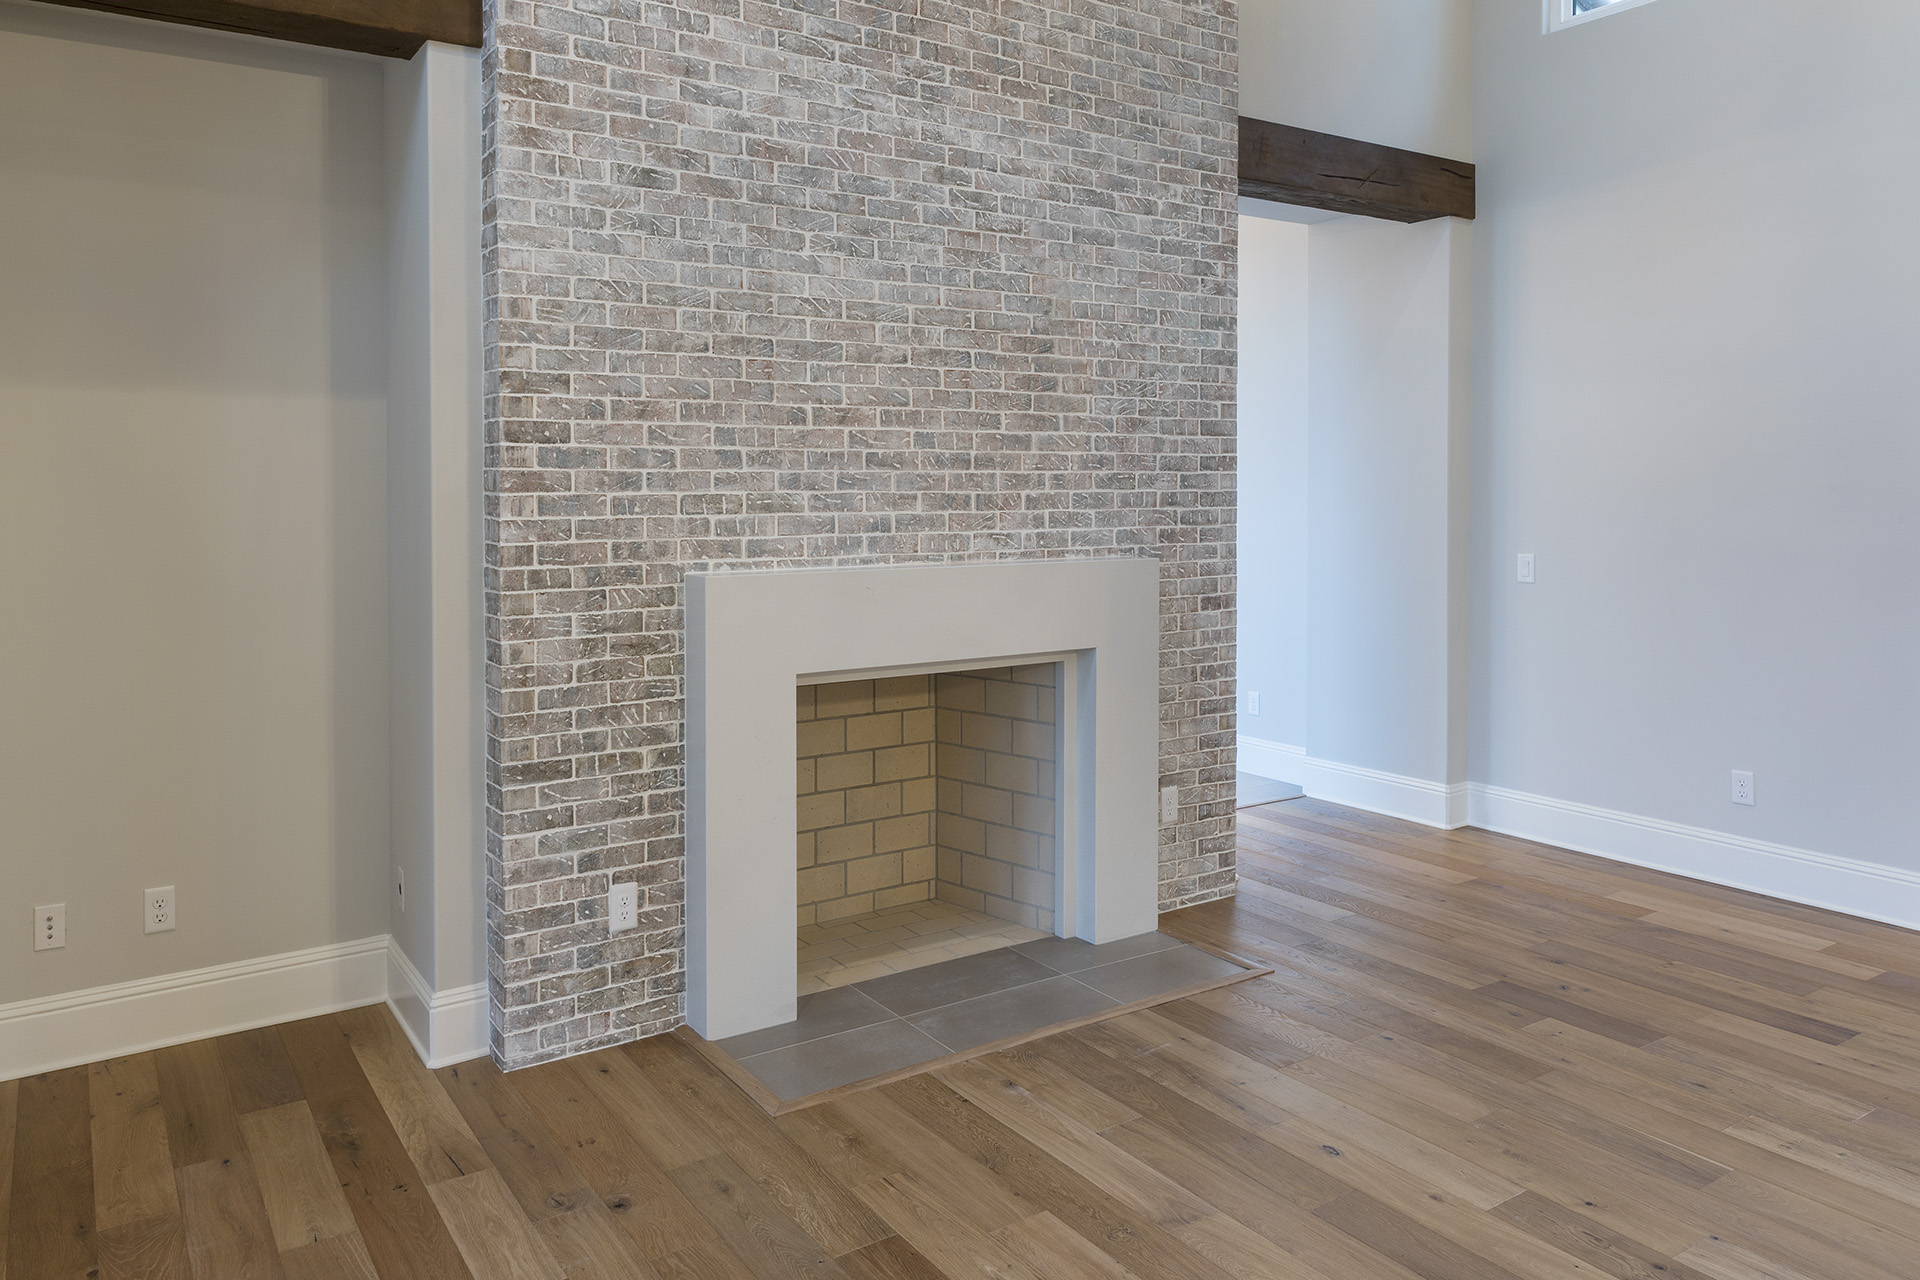 new fireplace designed and built by Einheit custom homes